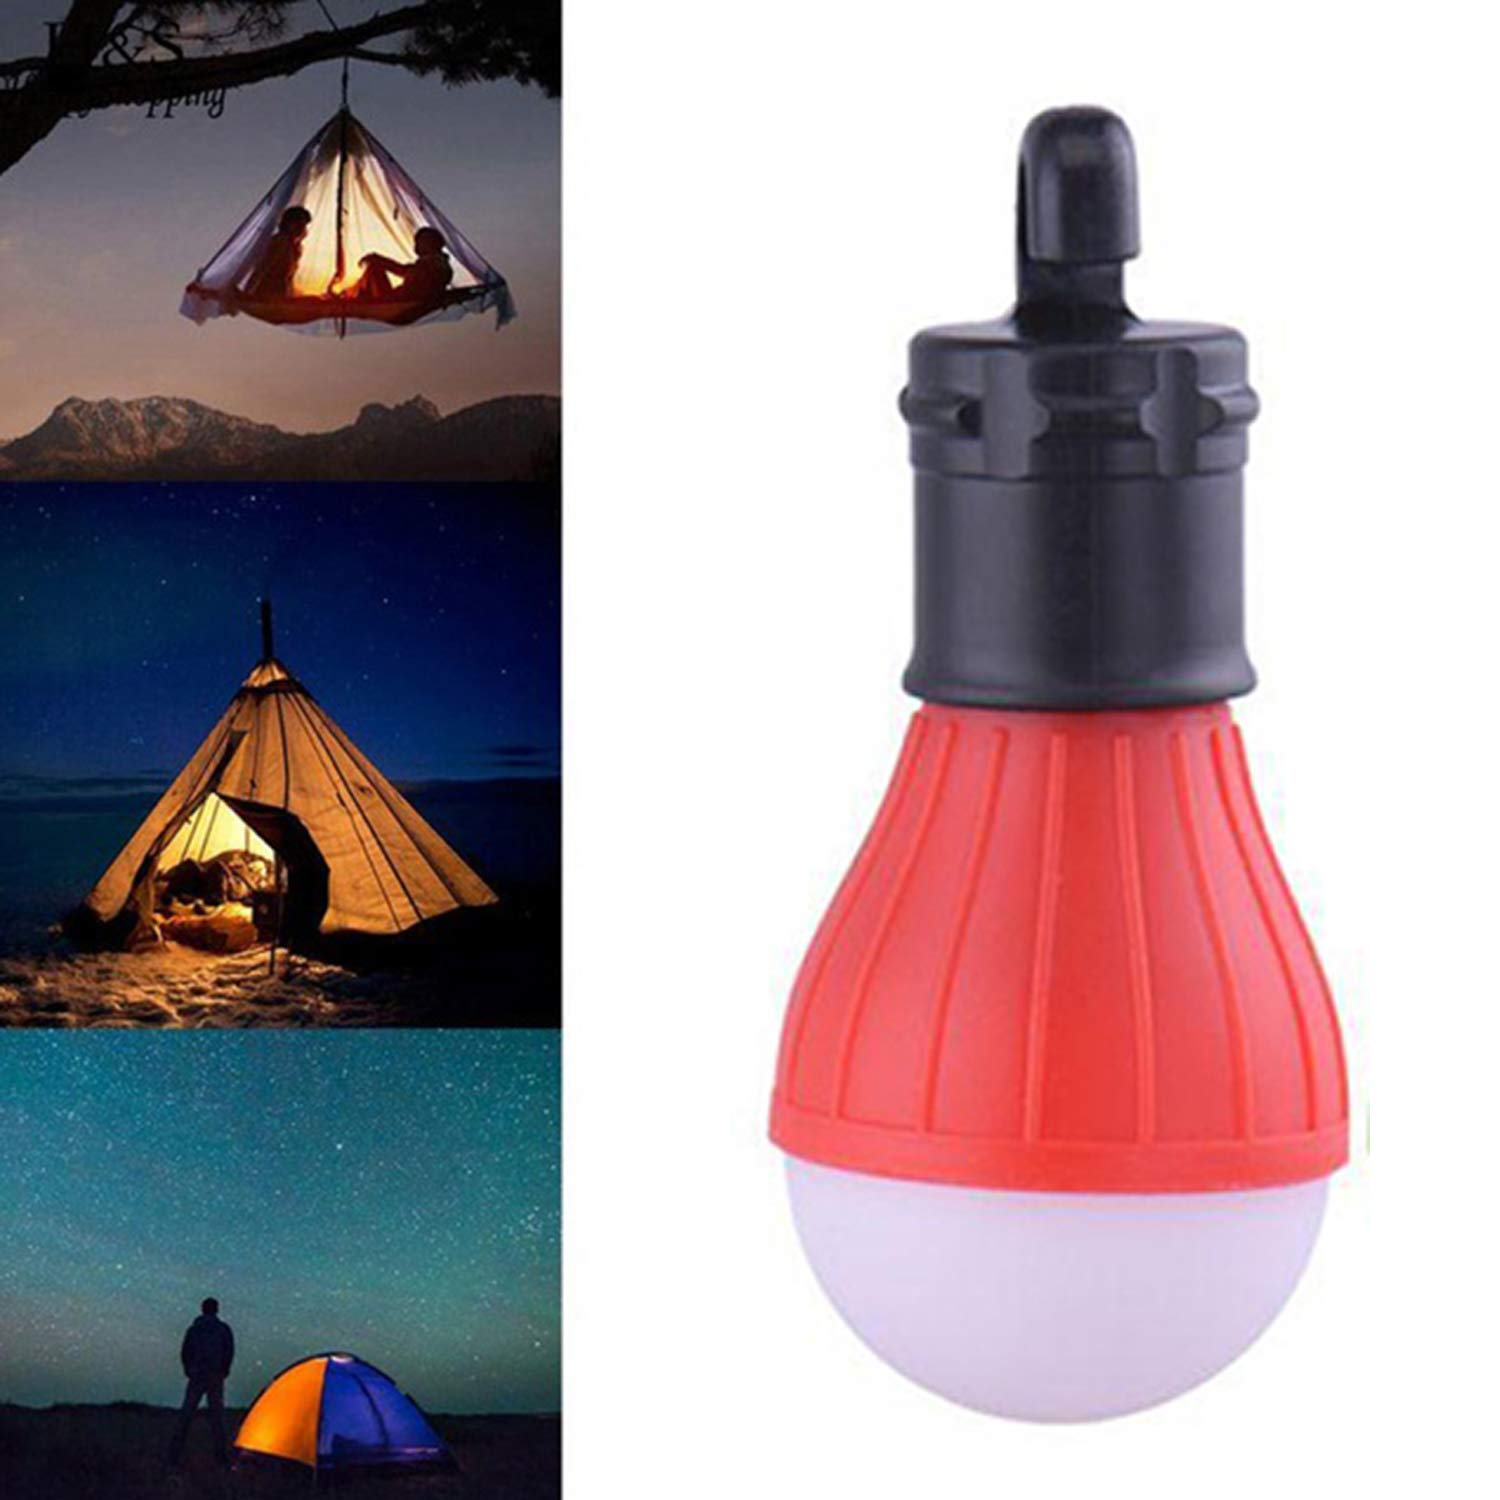 Angoo Beauty Multifunctional Outdoor Camping LED Tent Light Portable Emergency Lamp with Hook (Red)